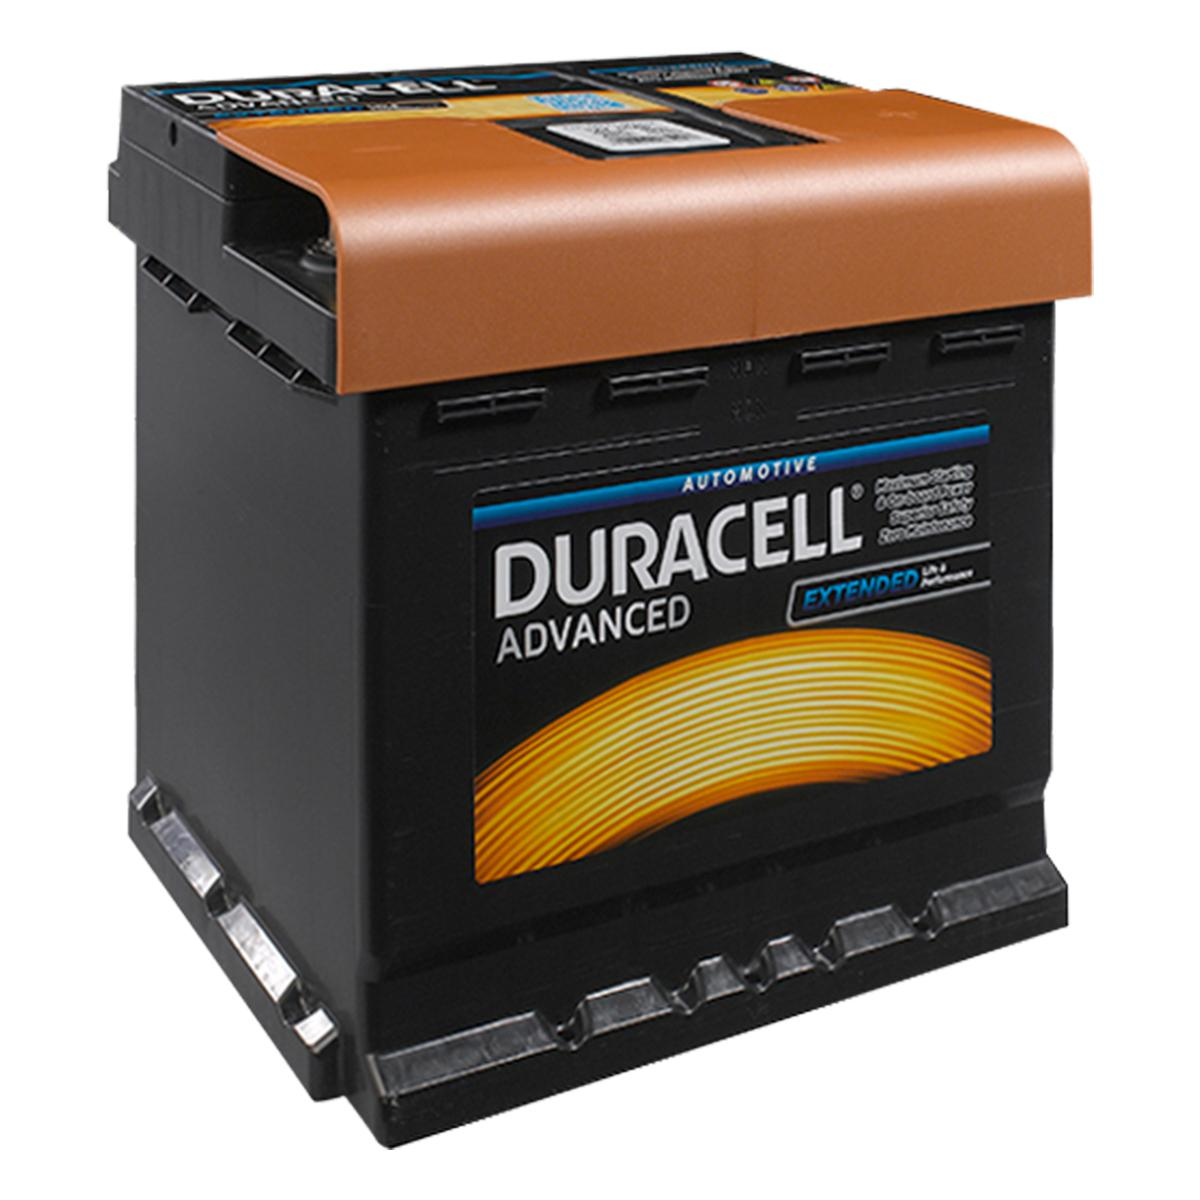 duracell 202 da42 advanced car battery. Black Bedroom Furniture Sets. Home Design Ideas